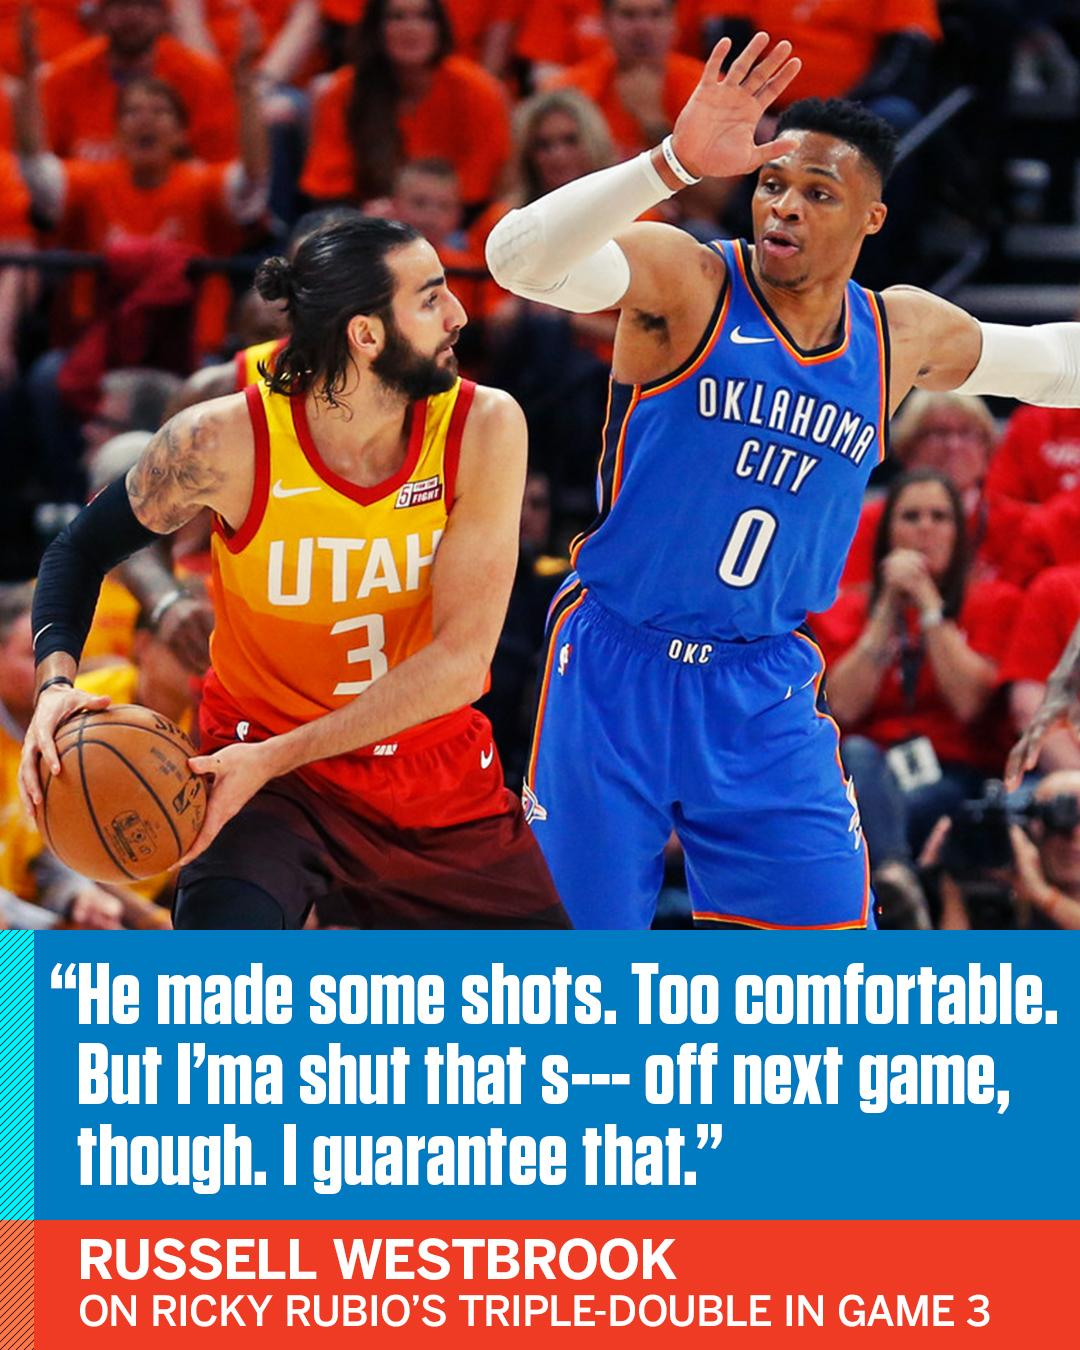 Russell Westbrook is on to Ricky Rubio. https://t.co/YpWYEt8s3x